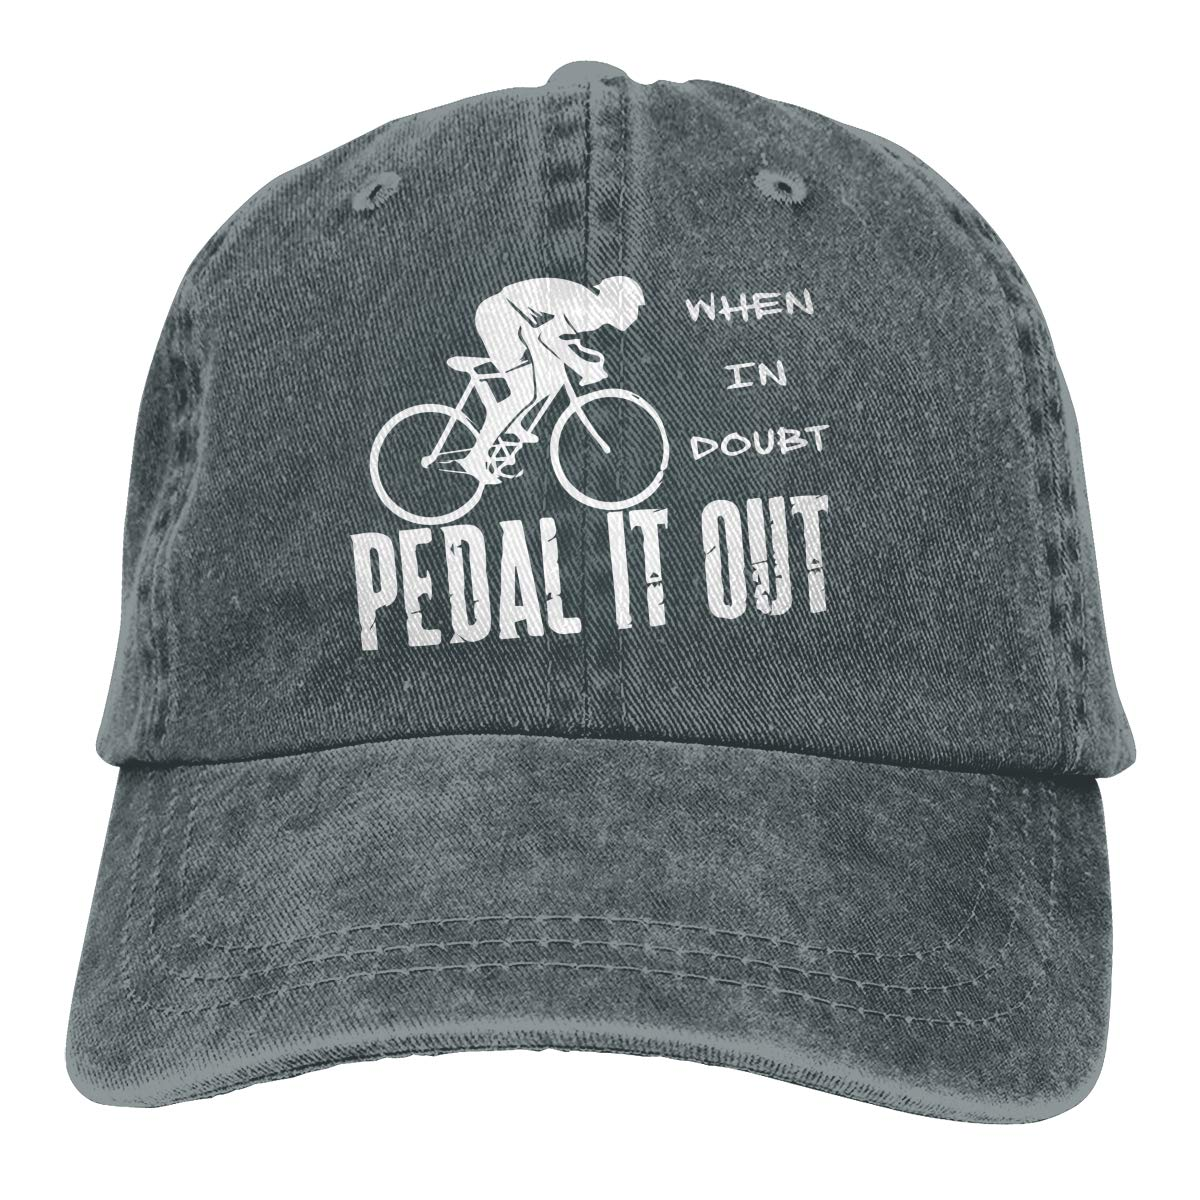 Men Women Classic Denim Jeans Baseball Cap When in Doubt Pedal It Out Headwear